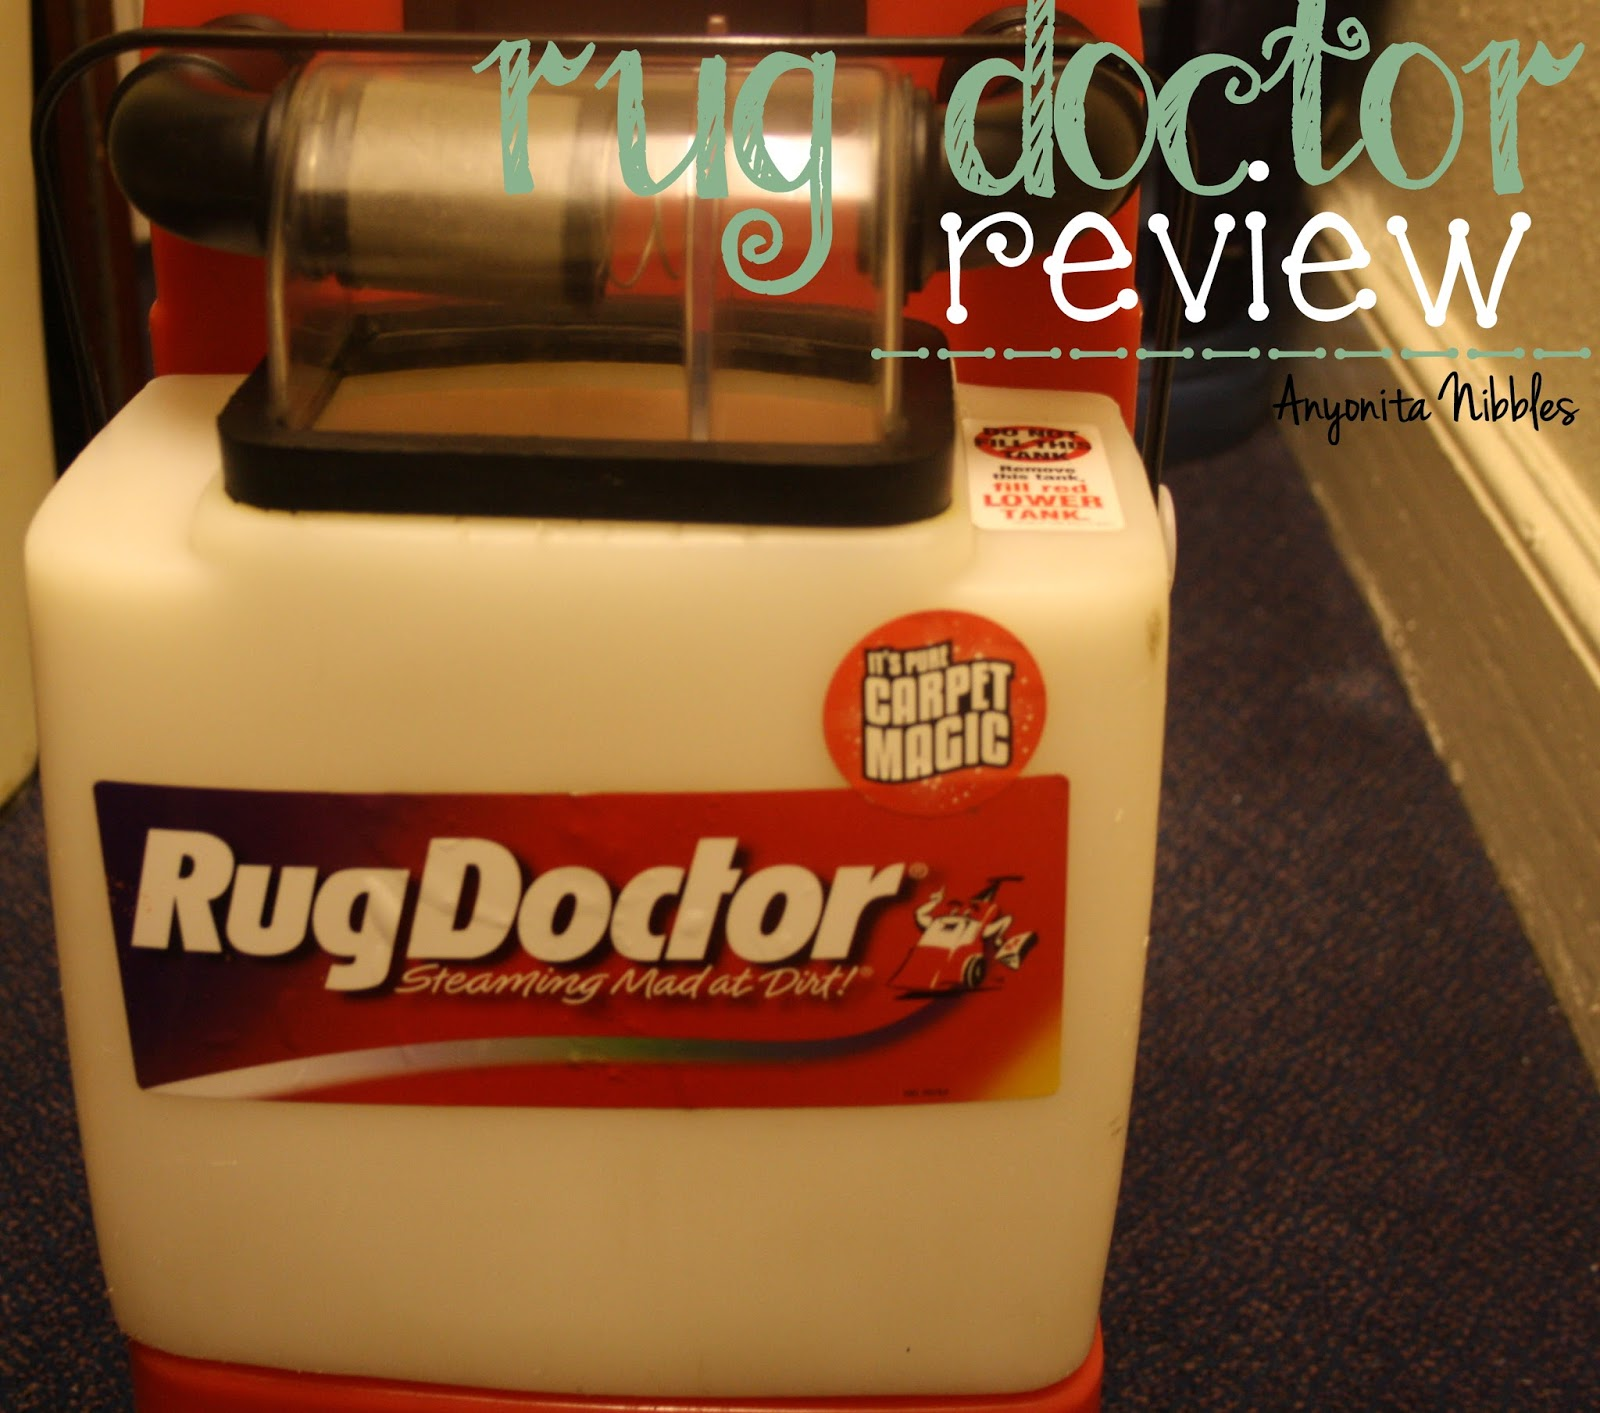 Rug Doctor Review From Www.anyonita Nibbles.com